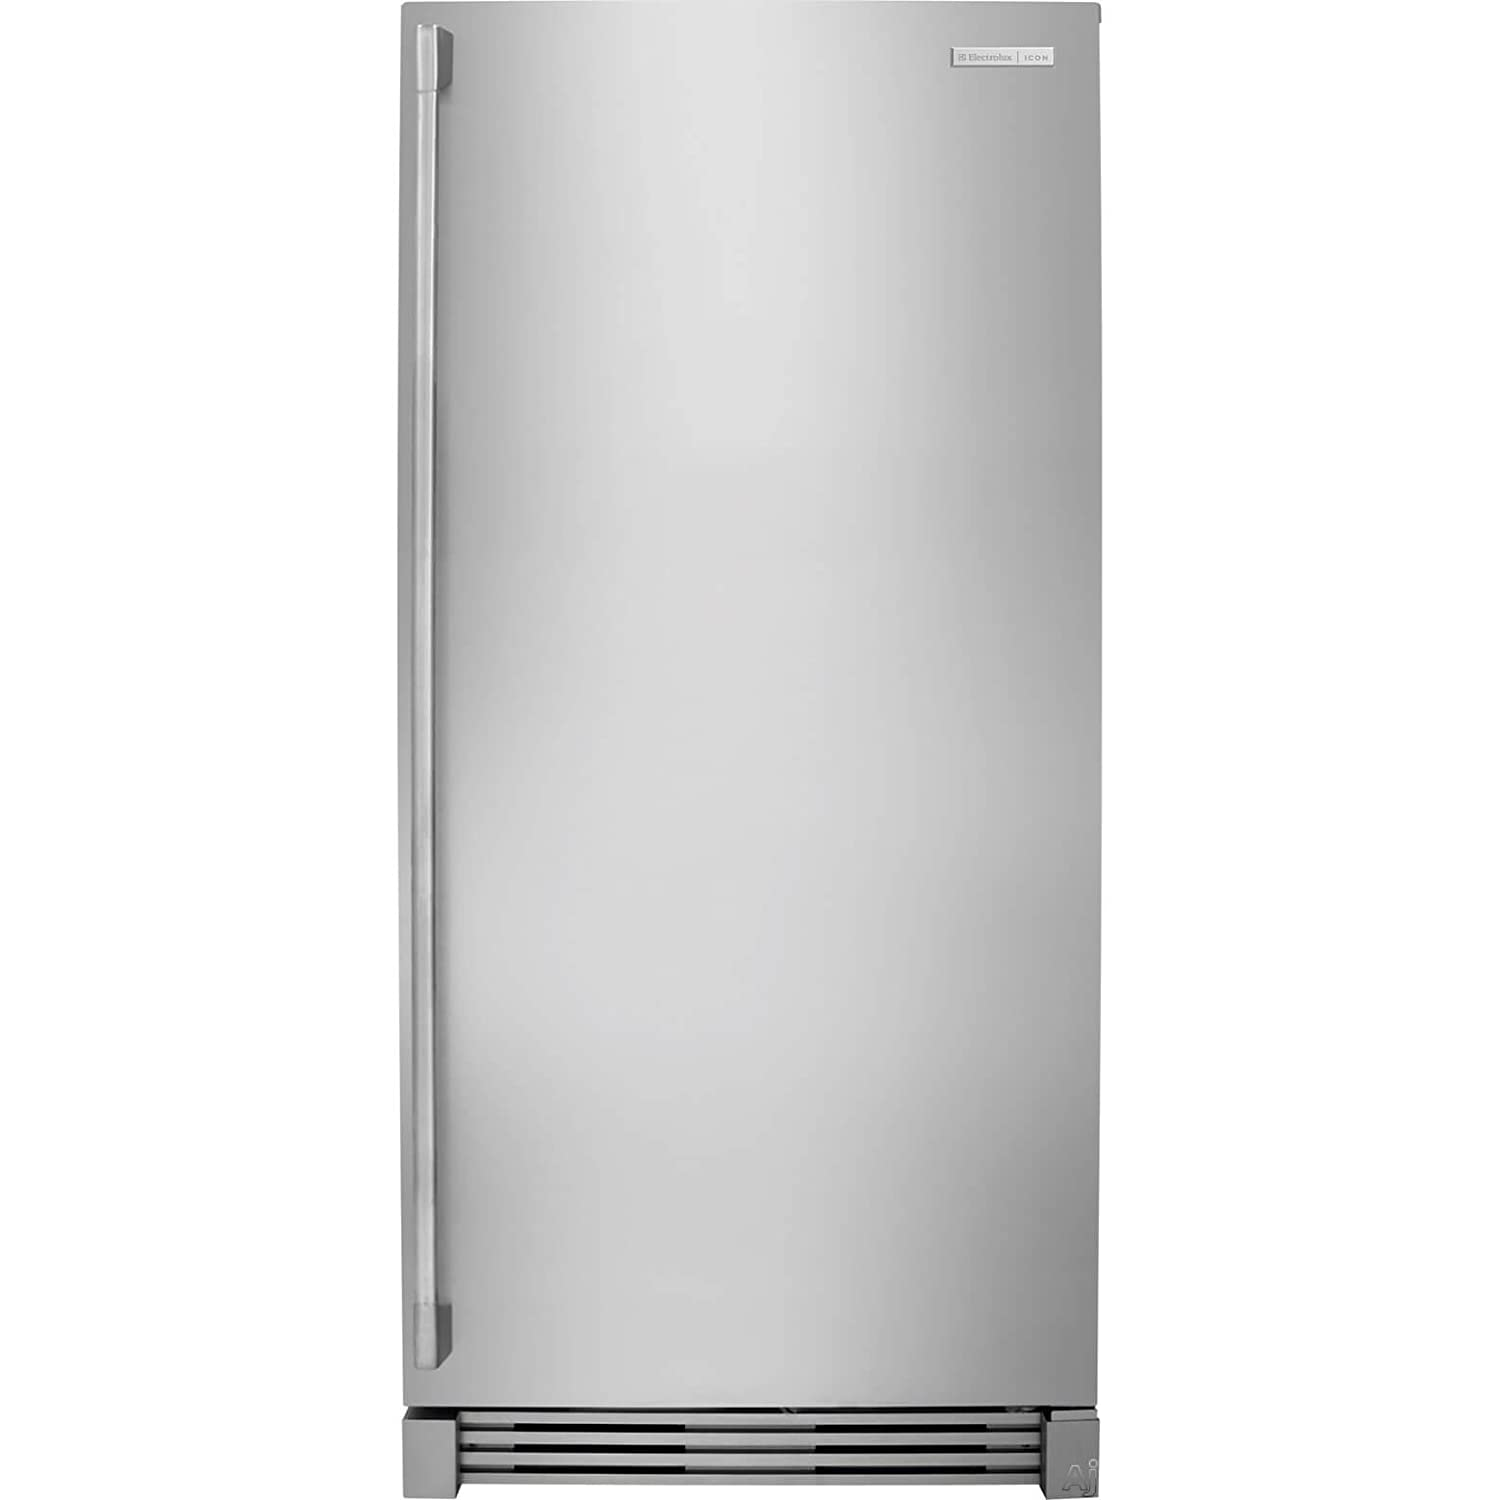 Electrolux Icon Professional E32AR85PQS 32' Built-In All Refrigerator with 18.6 cu. ft., in Stainless Steel.